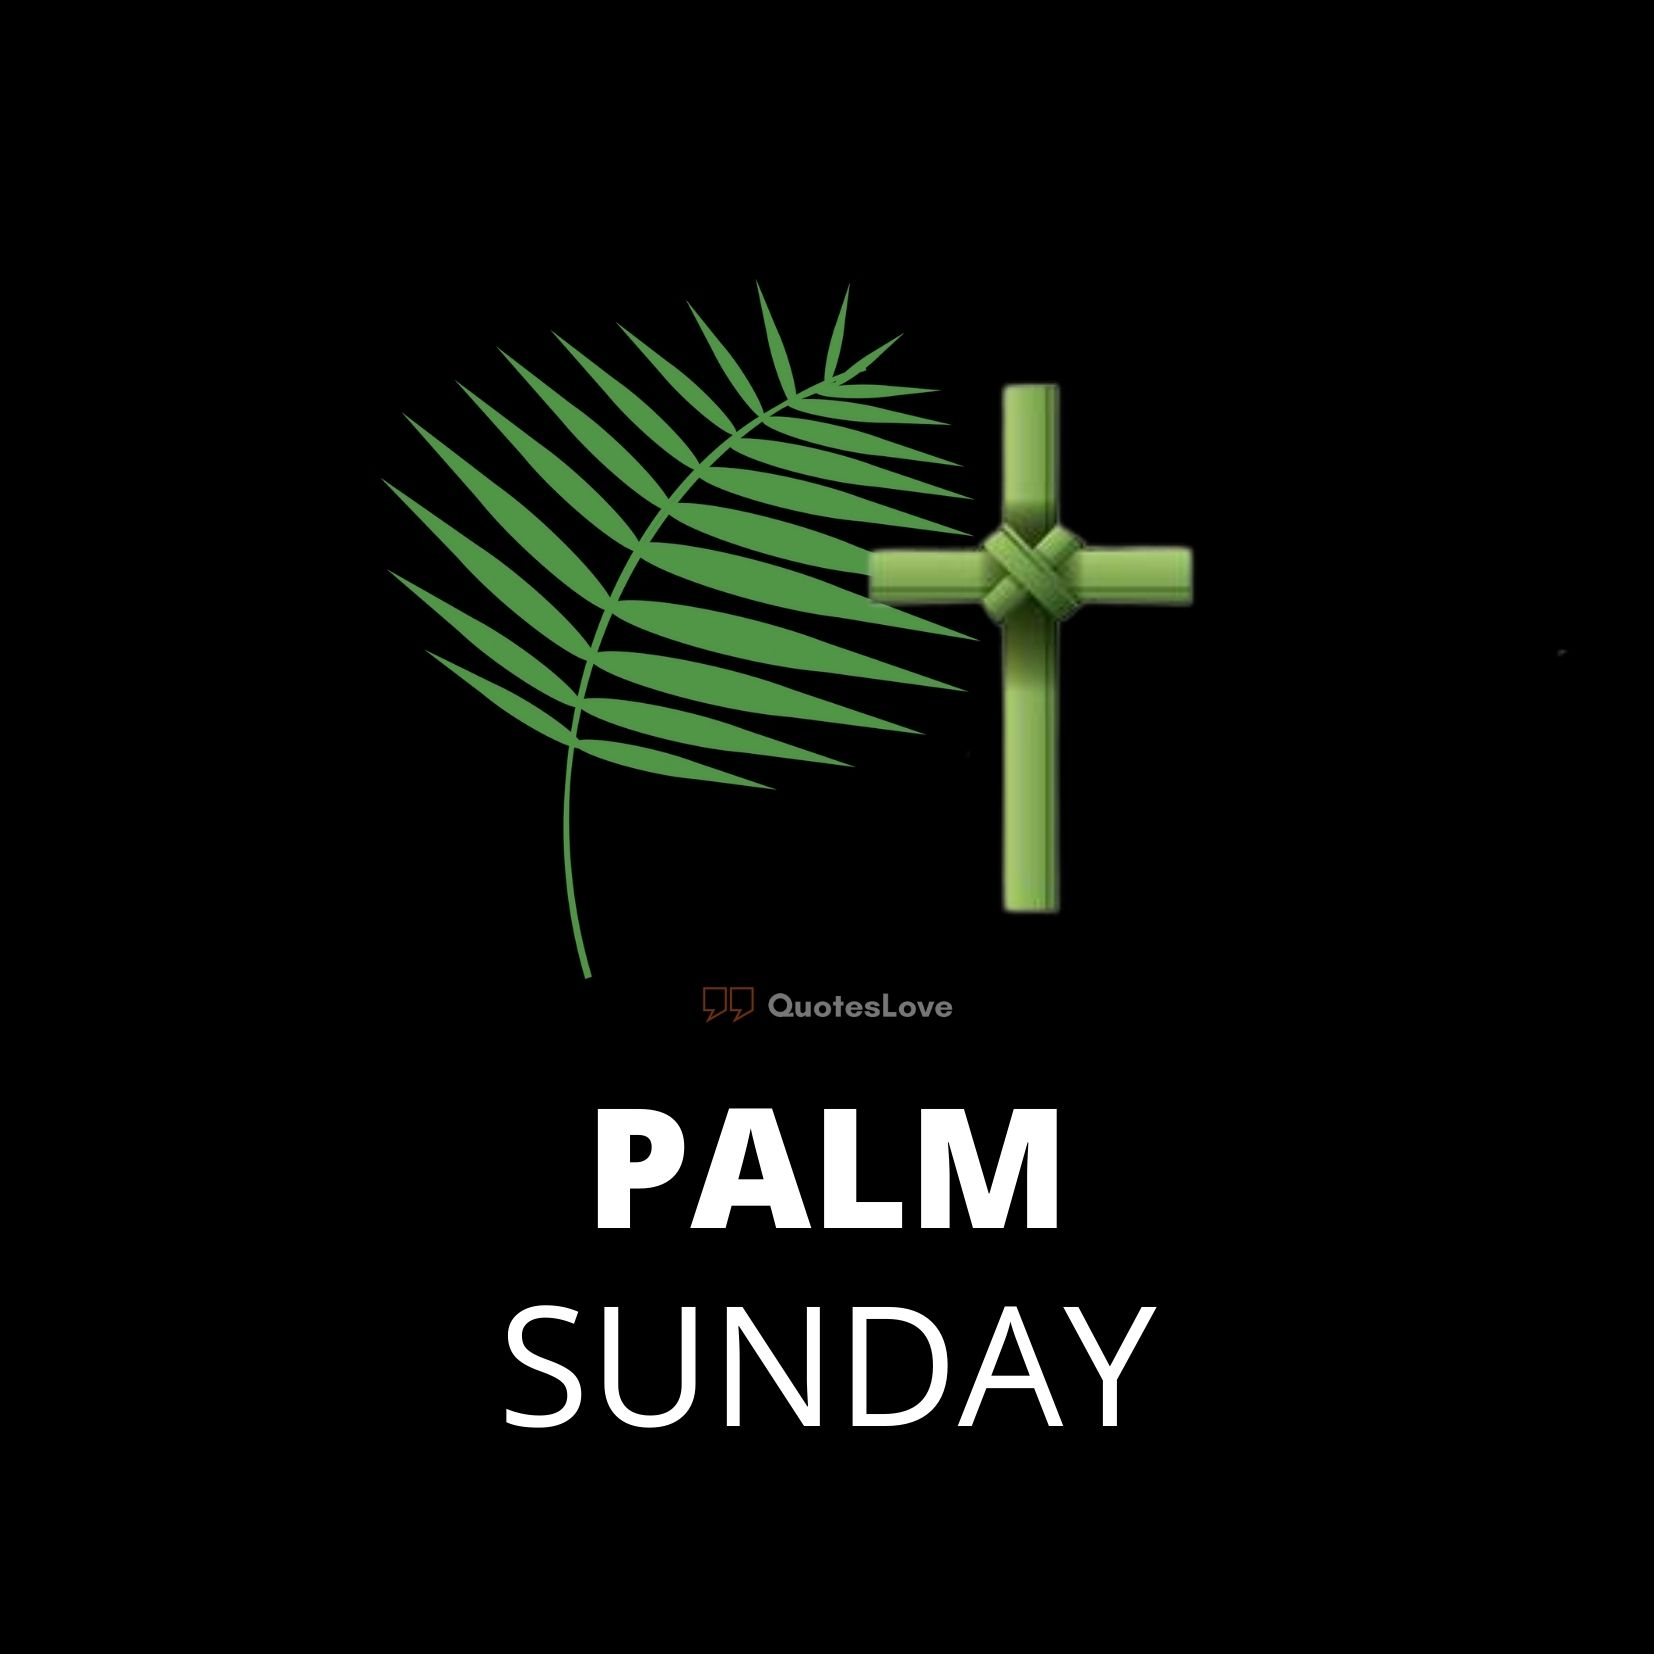 (New) Palm Sunday 2021 Images, Quotes, Verses, Pictures, Photos, Wallpaper